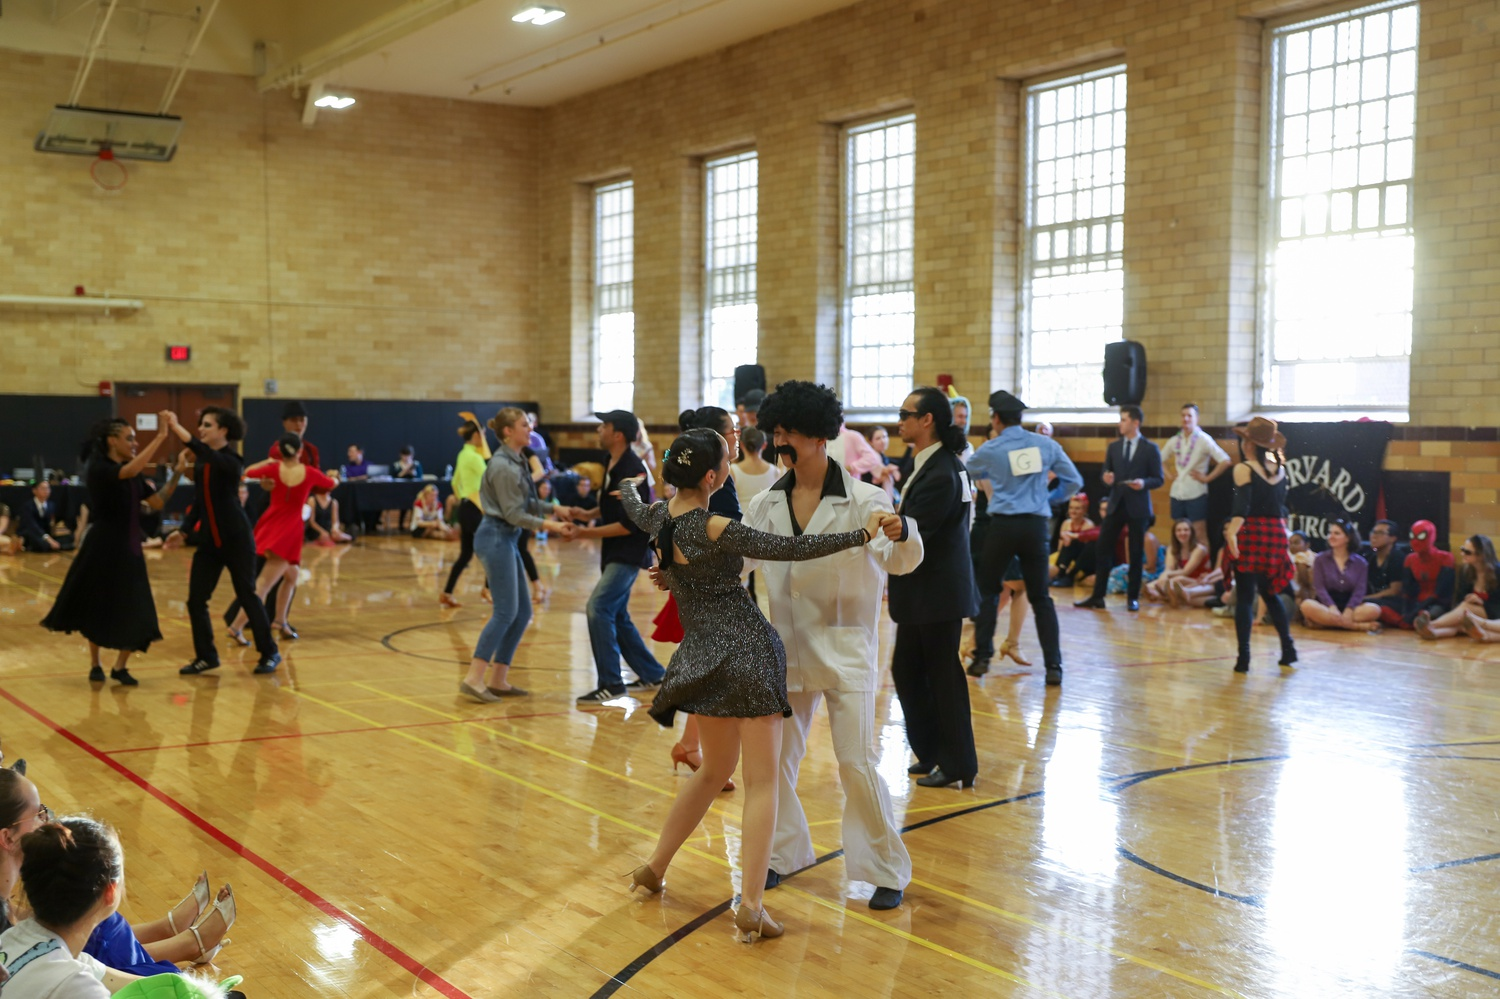 Swing Finals at Ballroom Competition